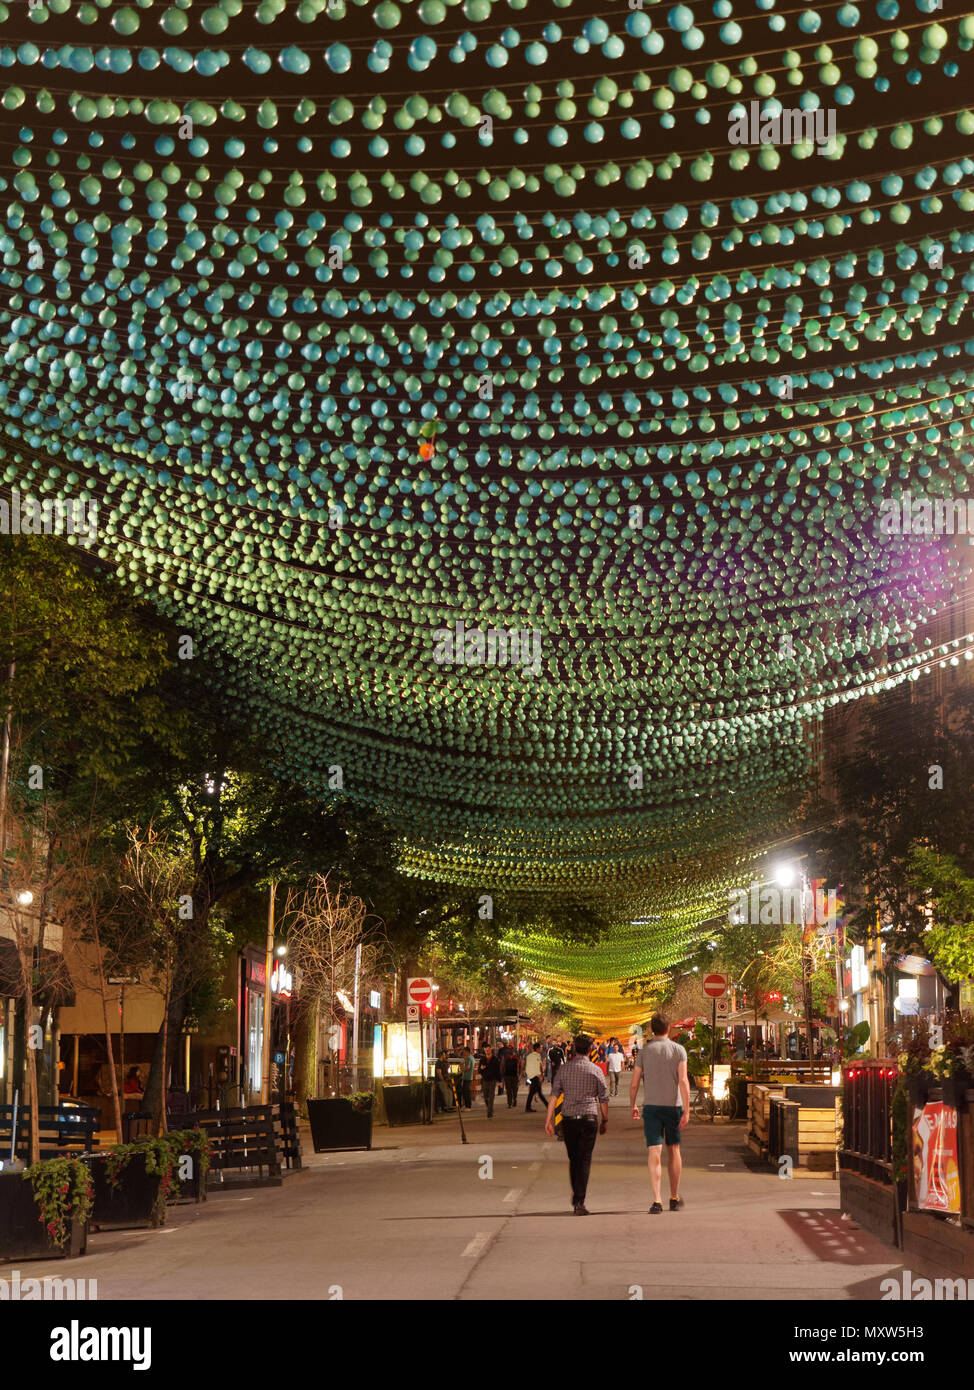 Quebec,Canada. St. Catherine street in Montreal's Gay Village at night - Stock Image